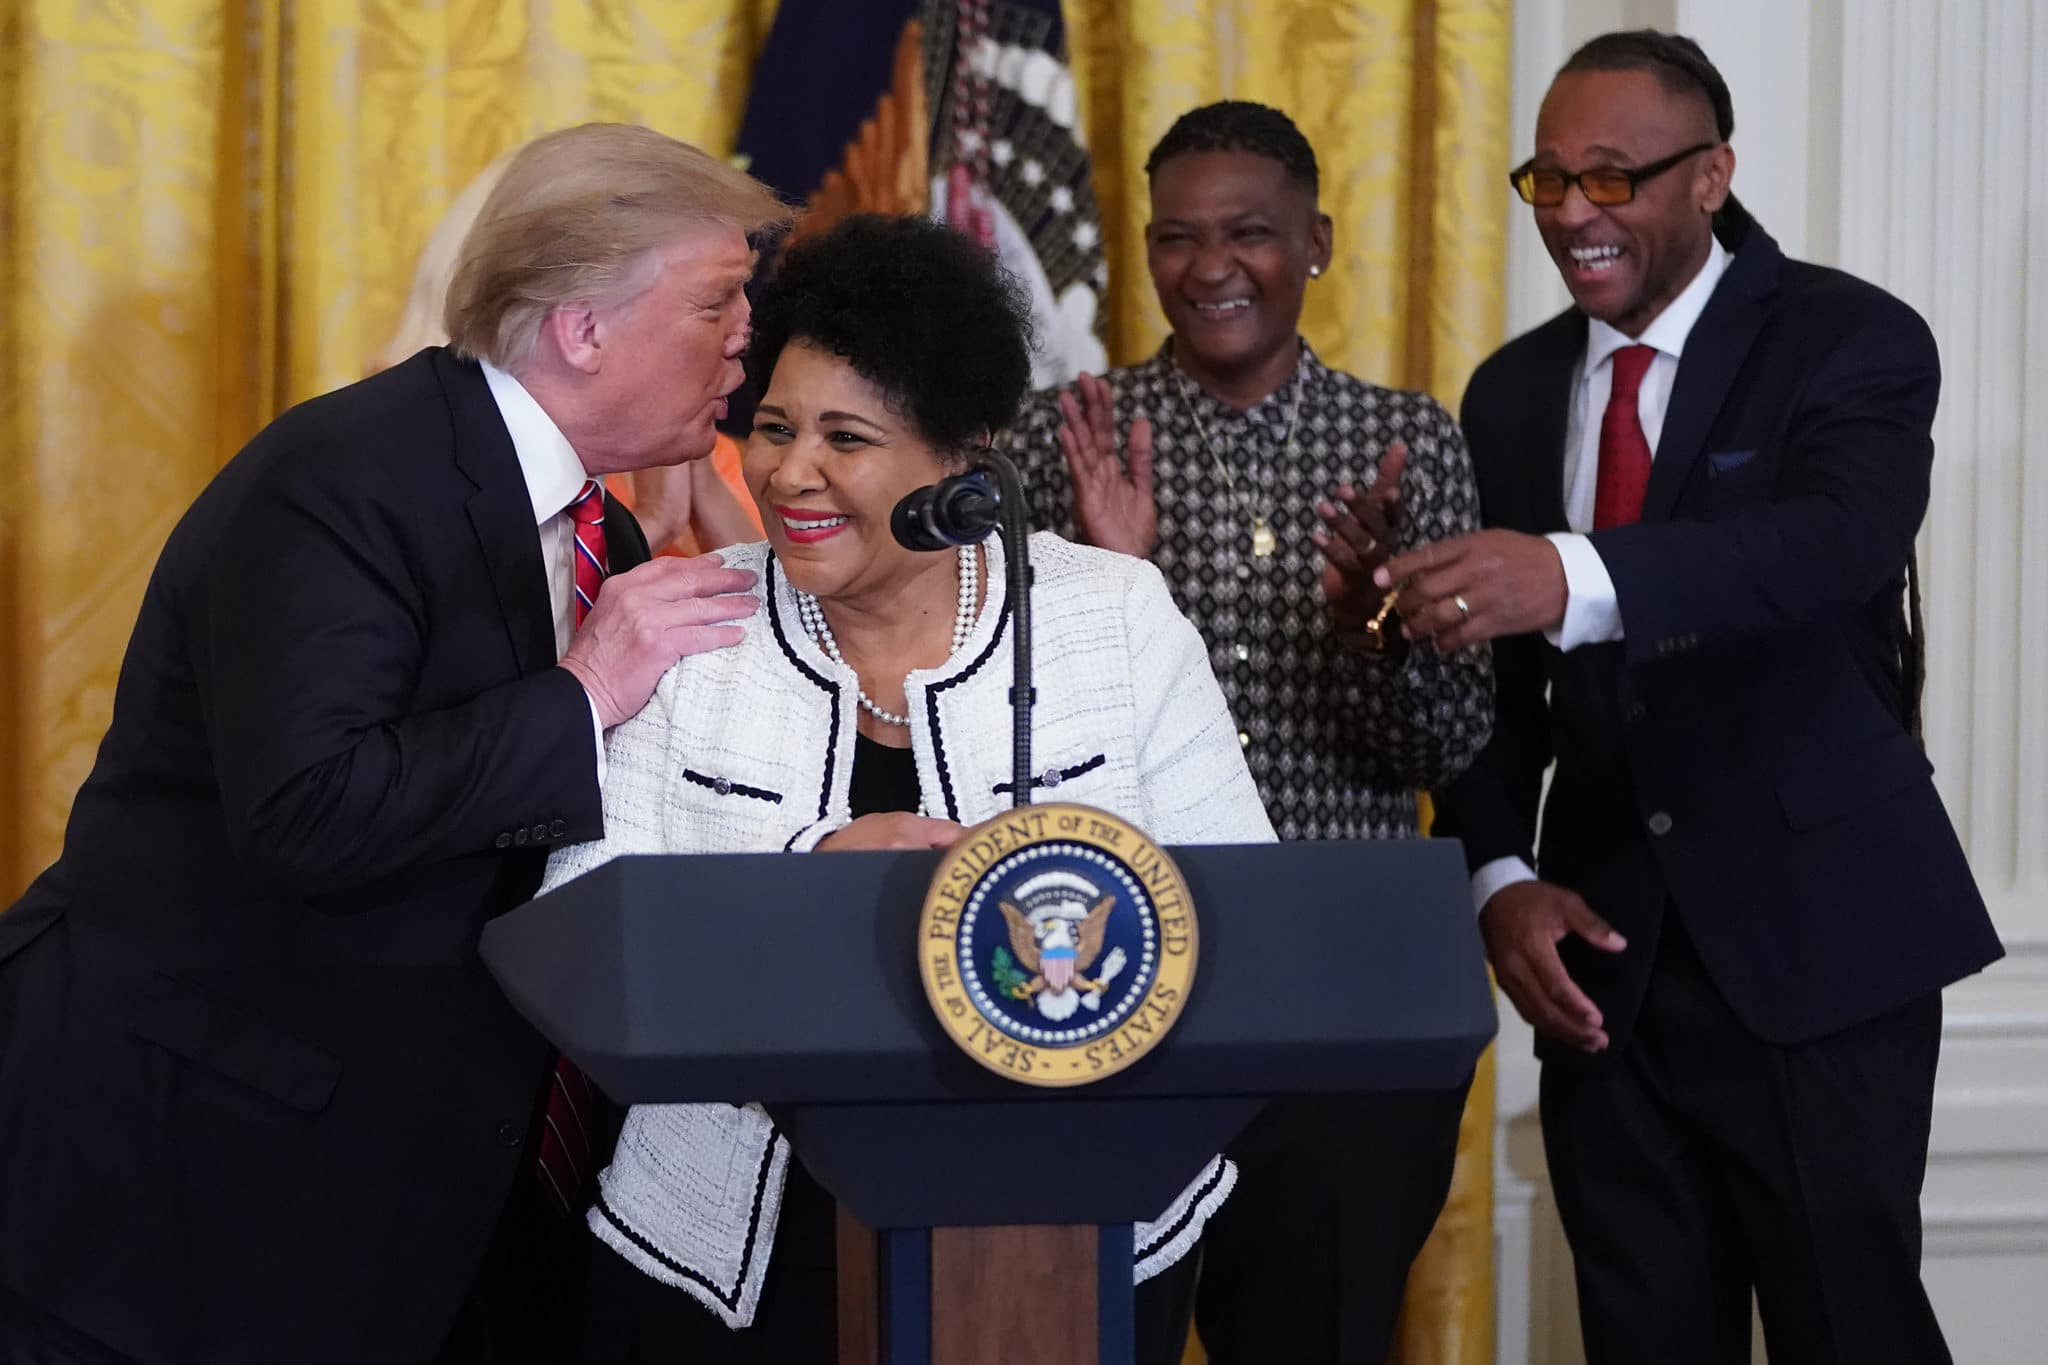 Democrats Panic as Trump Popularity Increases Among Black Voters